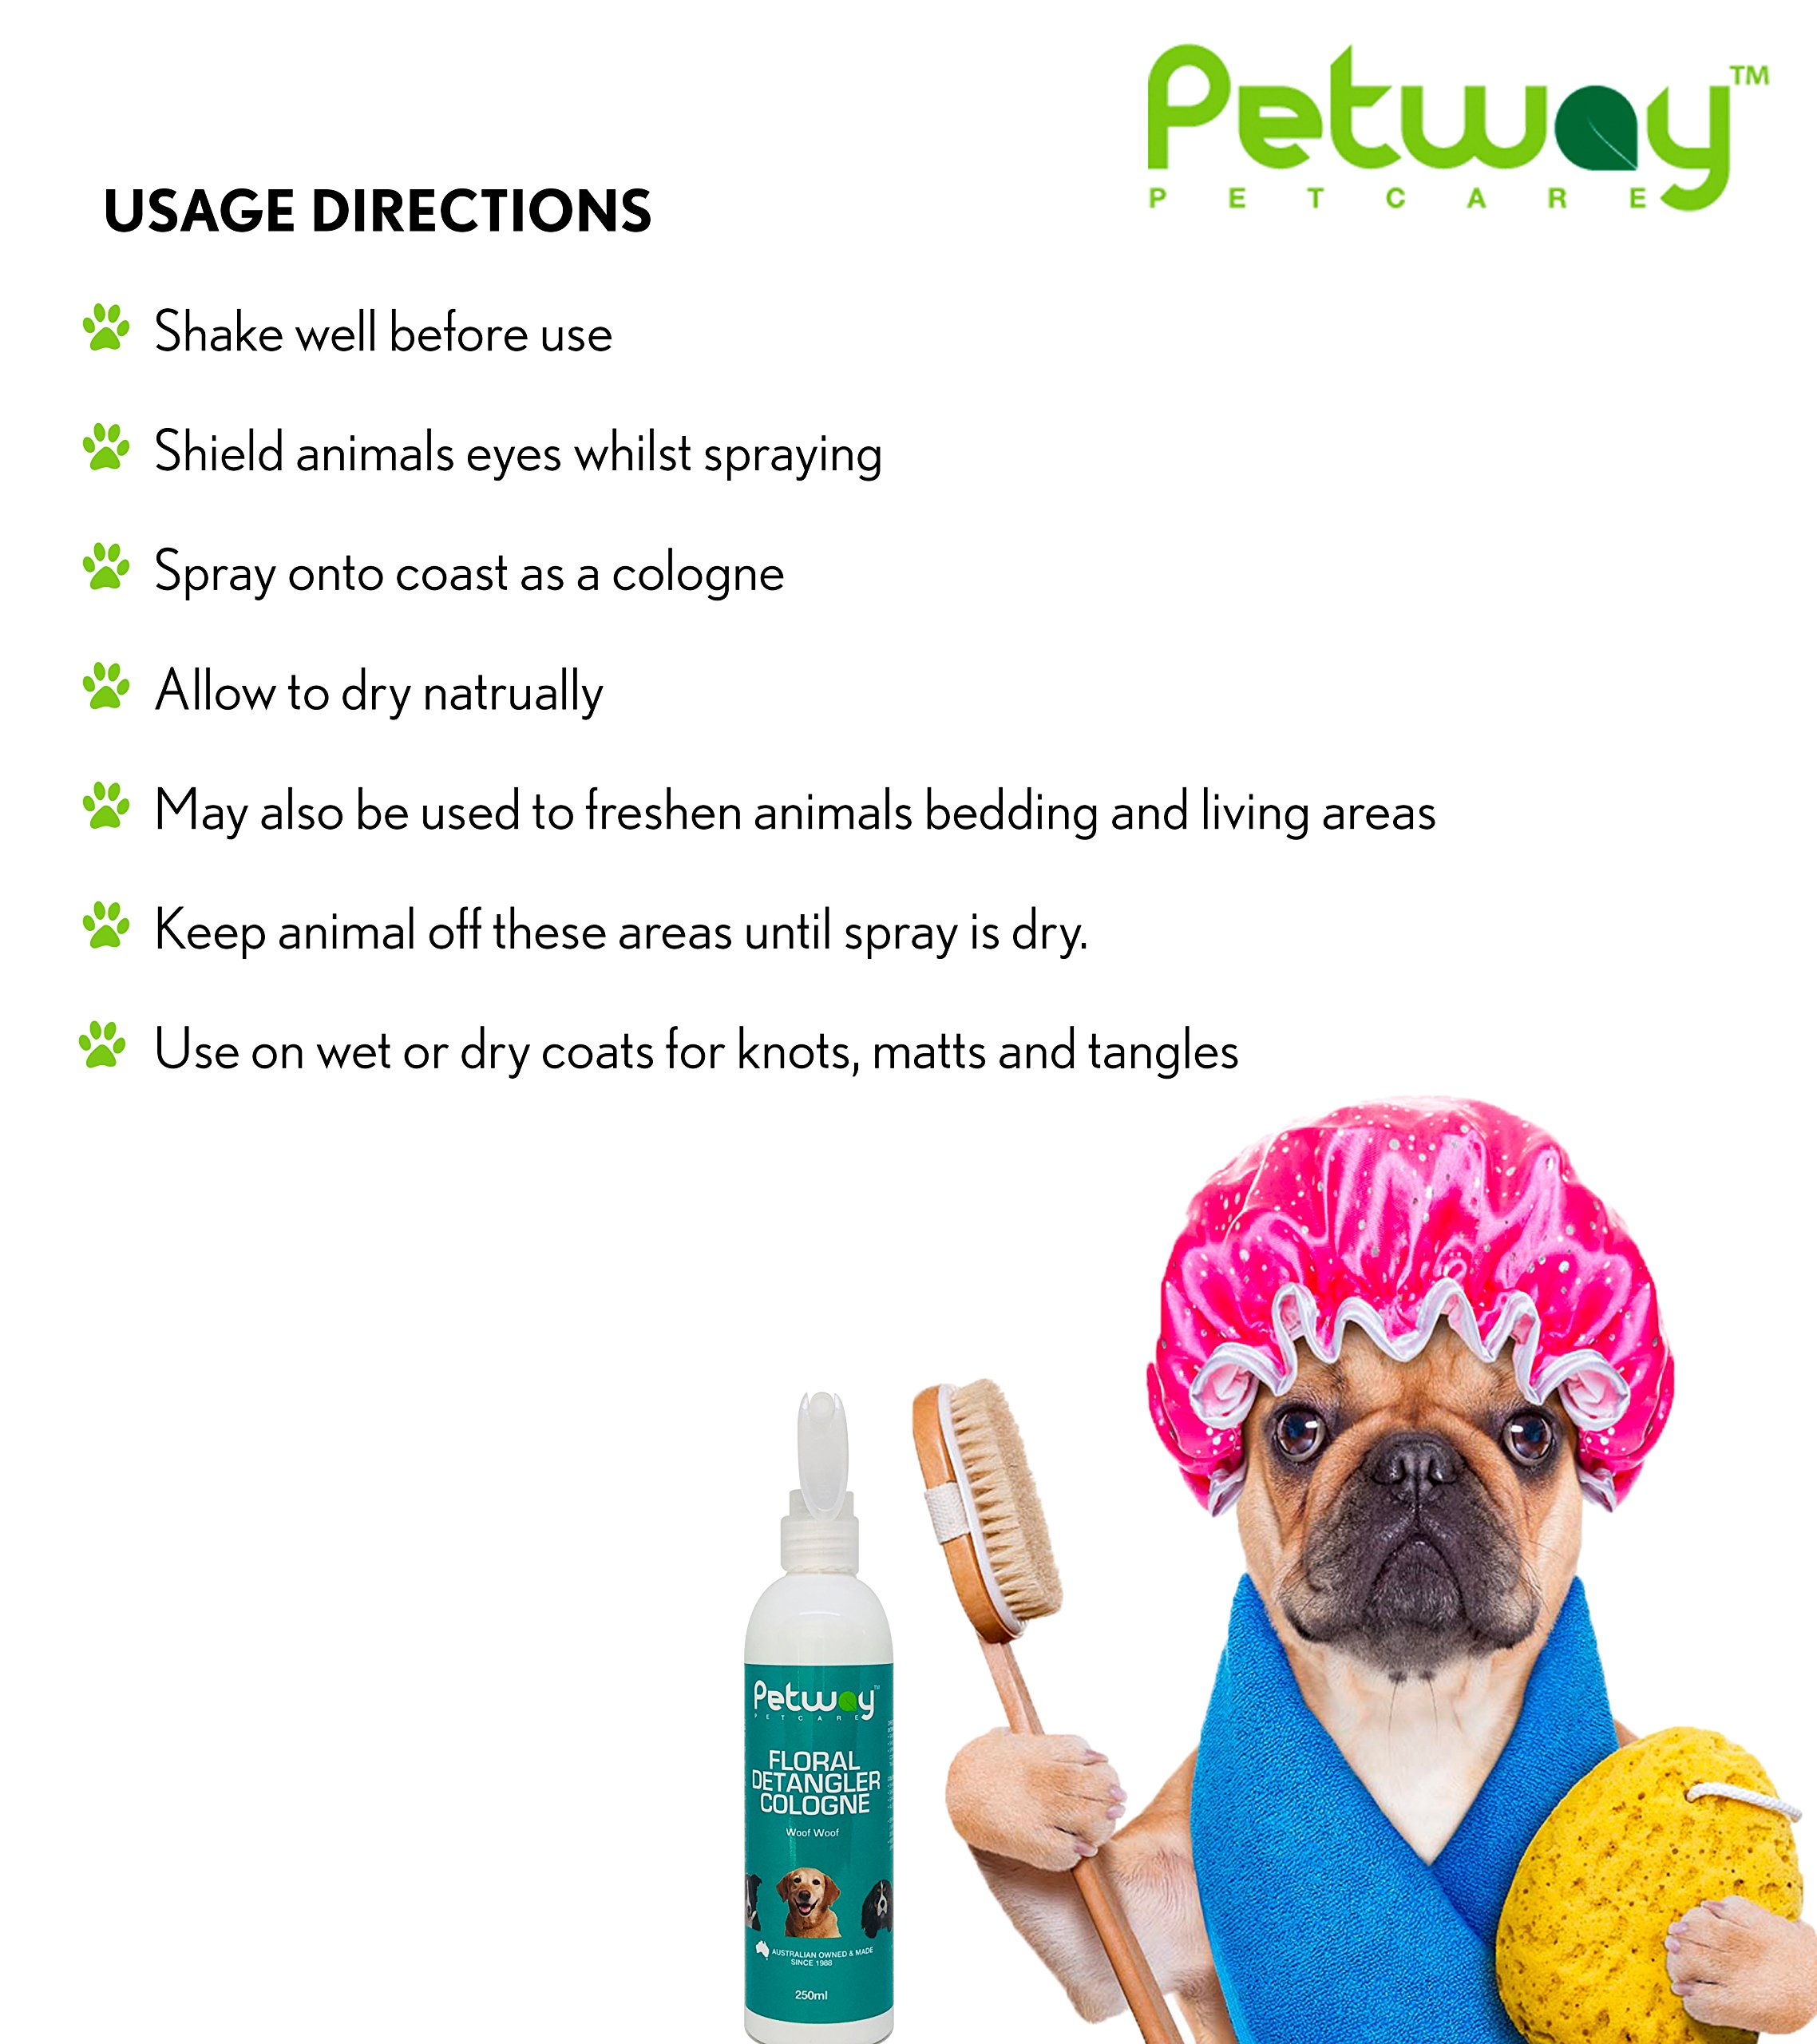 PETWAY Petcare Floral Detangler Cologne – Pet Cologne, Detangling and Dematting Spray with Deodorizing and Conditioning Qualities – Dog Grooming Detangler Conditioner Spray - 250ml by PETWAY (Image #5)